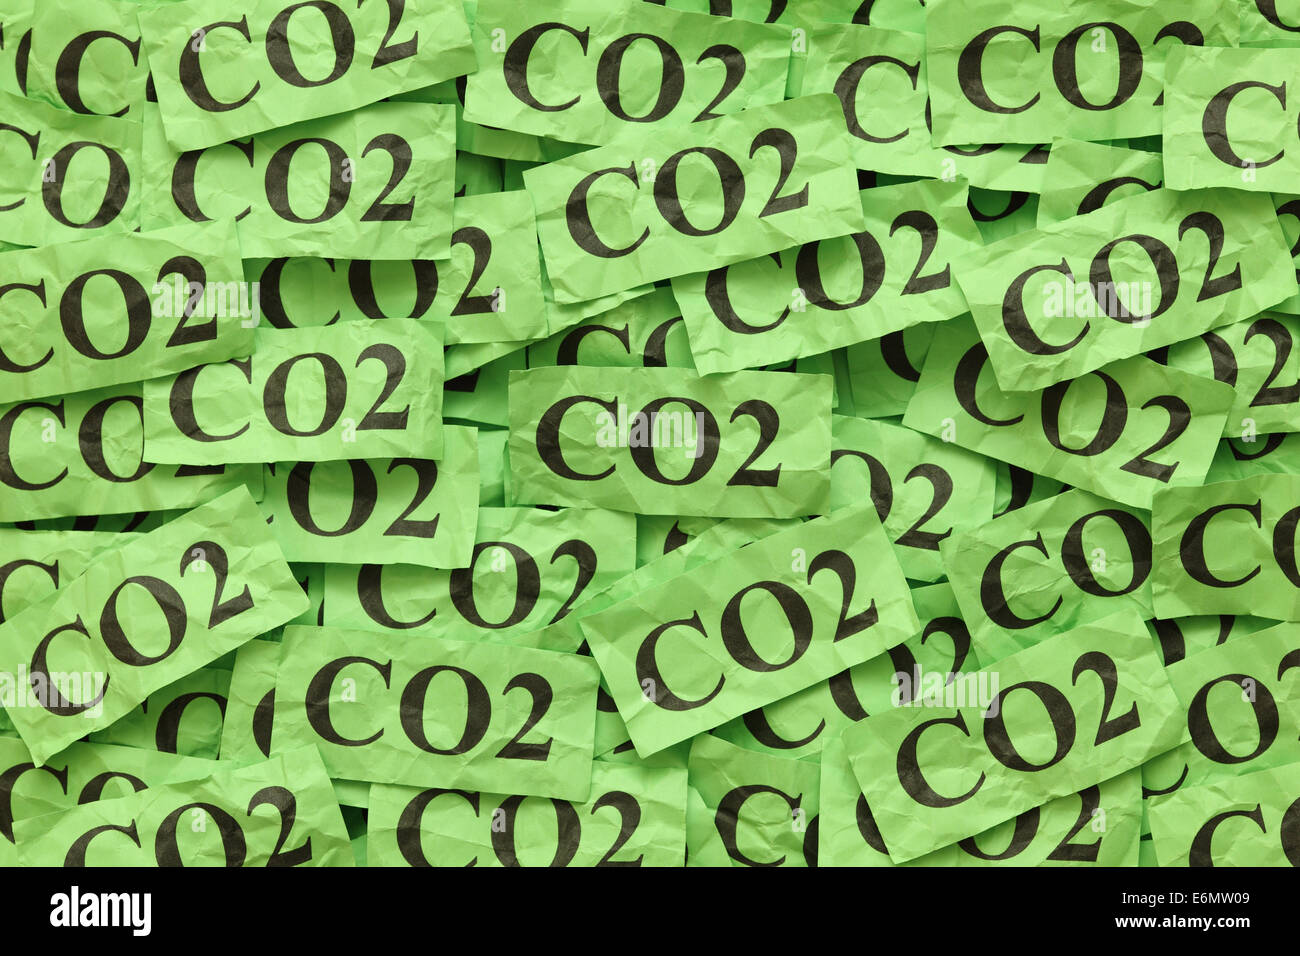 Pile of green paper notes with word 'CO2' (Carbon Dioxide). - Stock Image